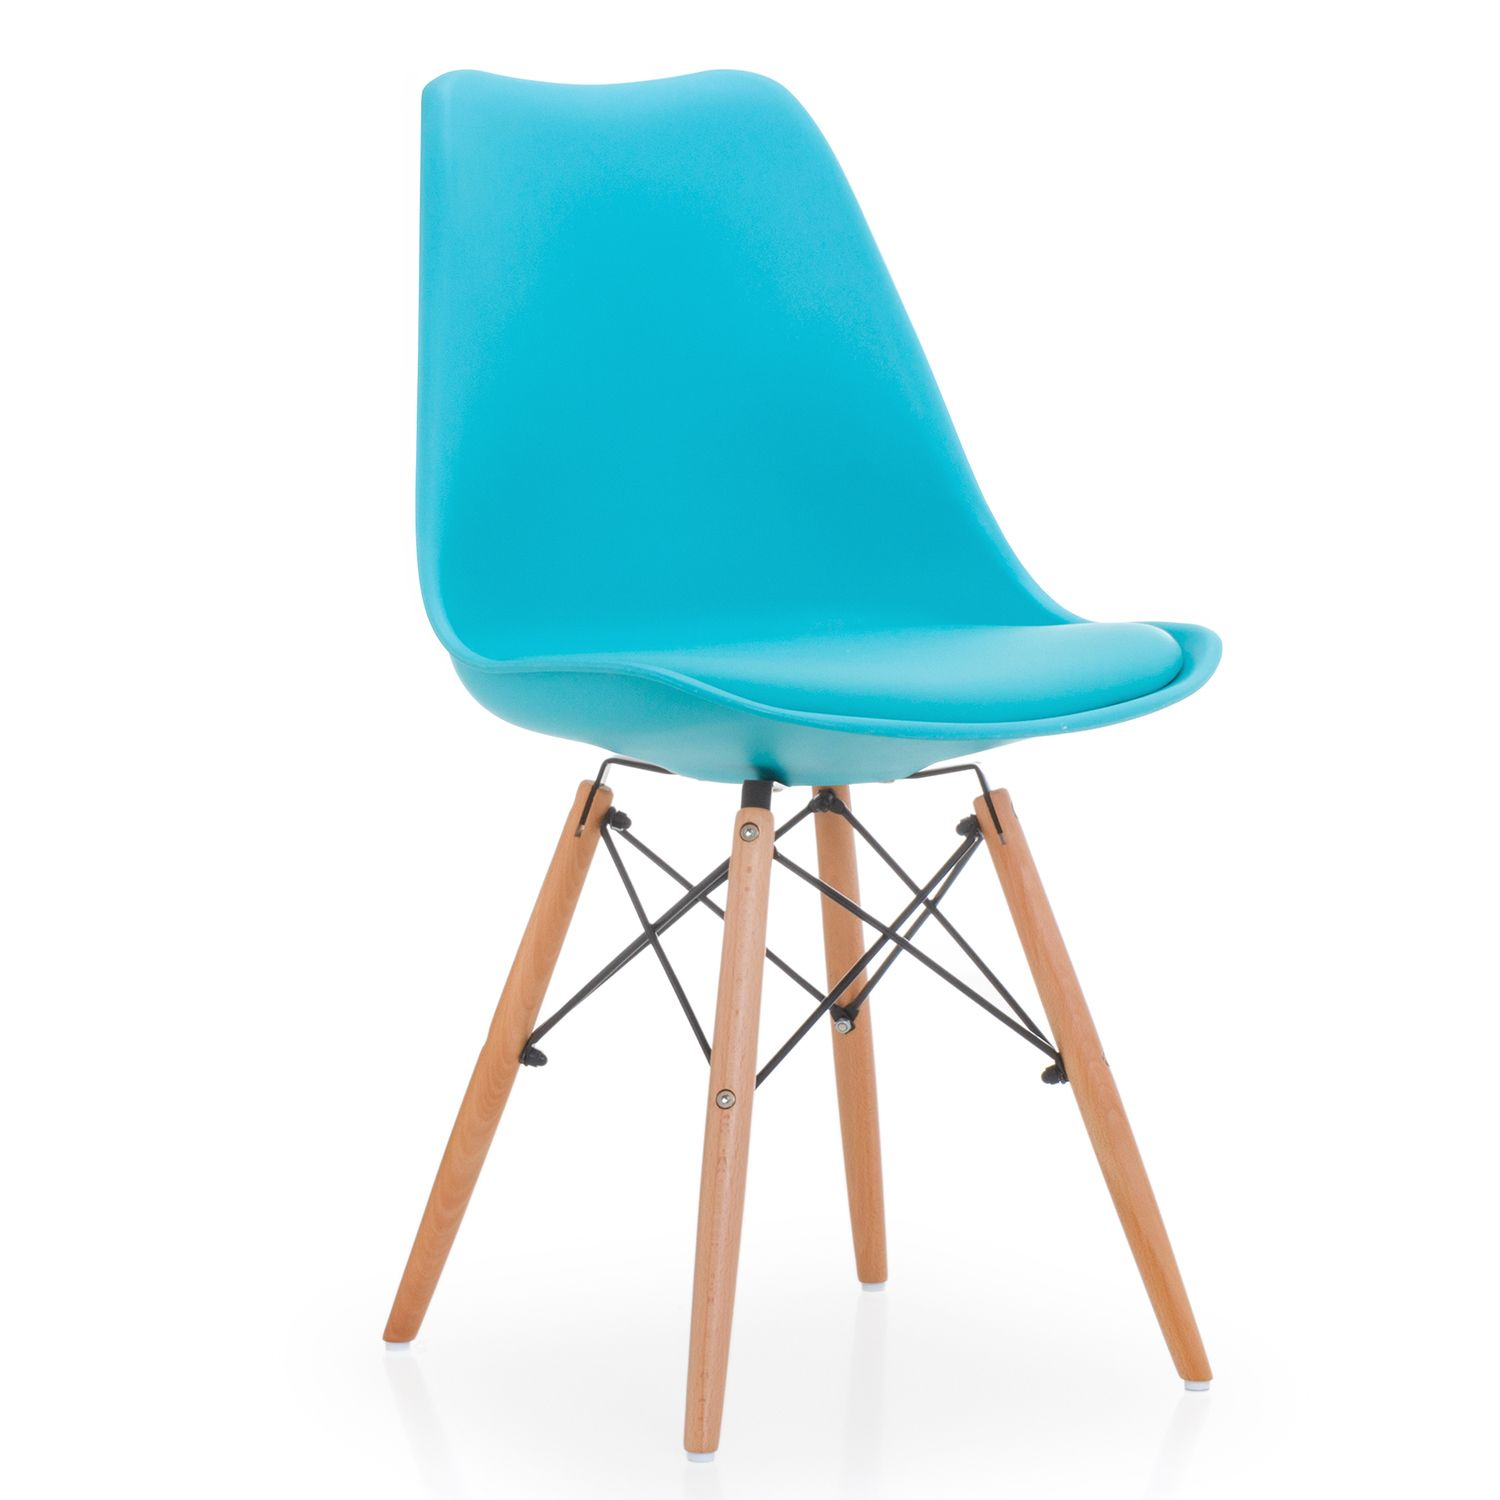 dining chair plastic leather cushion light blue wooden legs